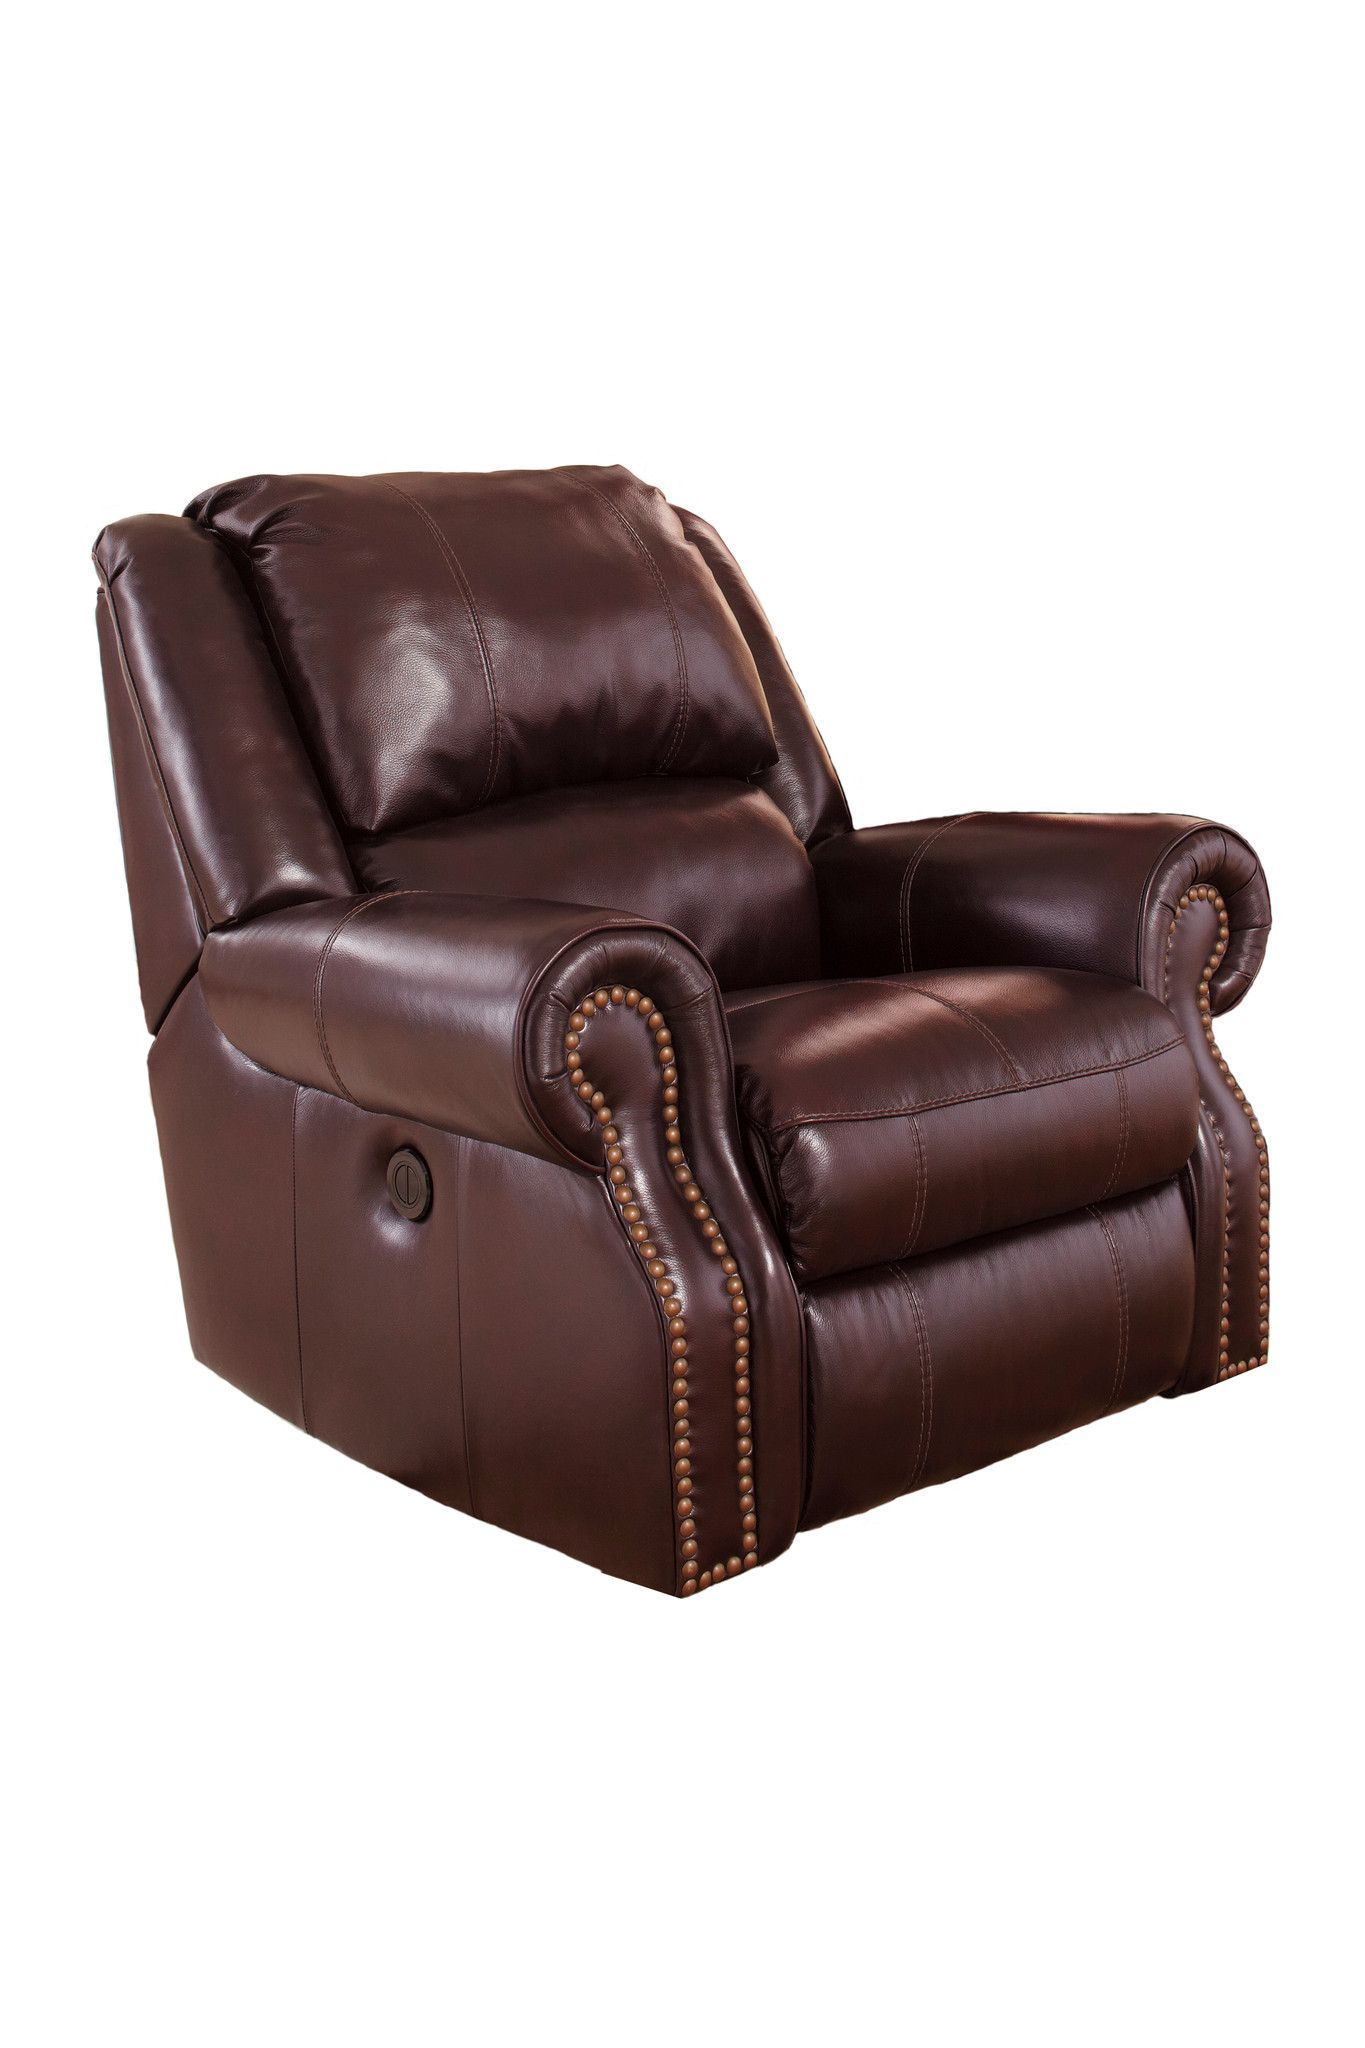 Walworth Power Recliner   furniture   Pinterest   Productos y ...